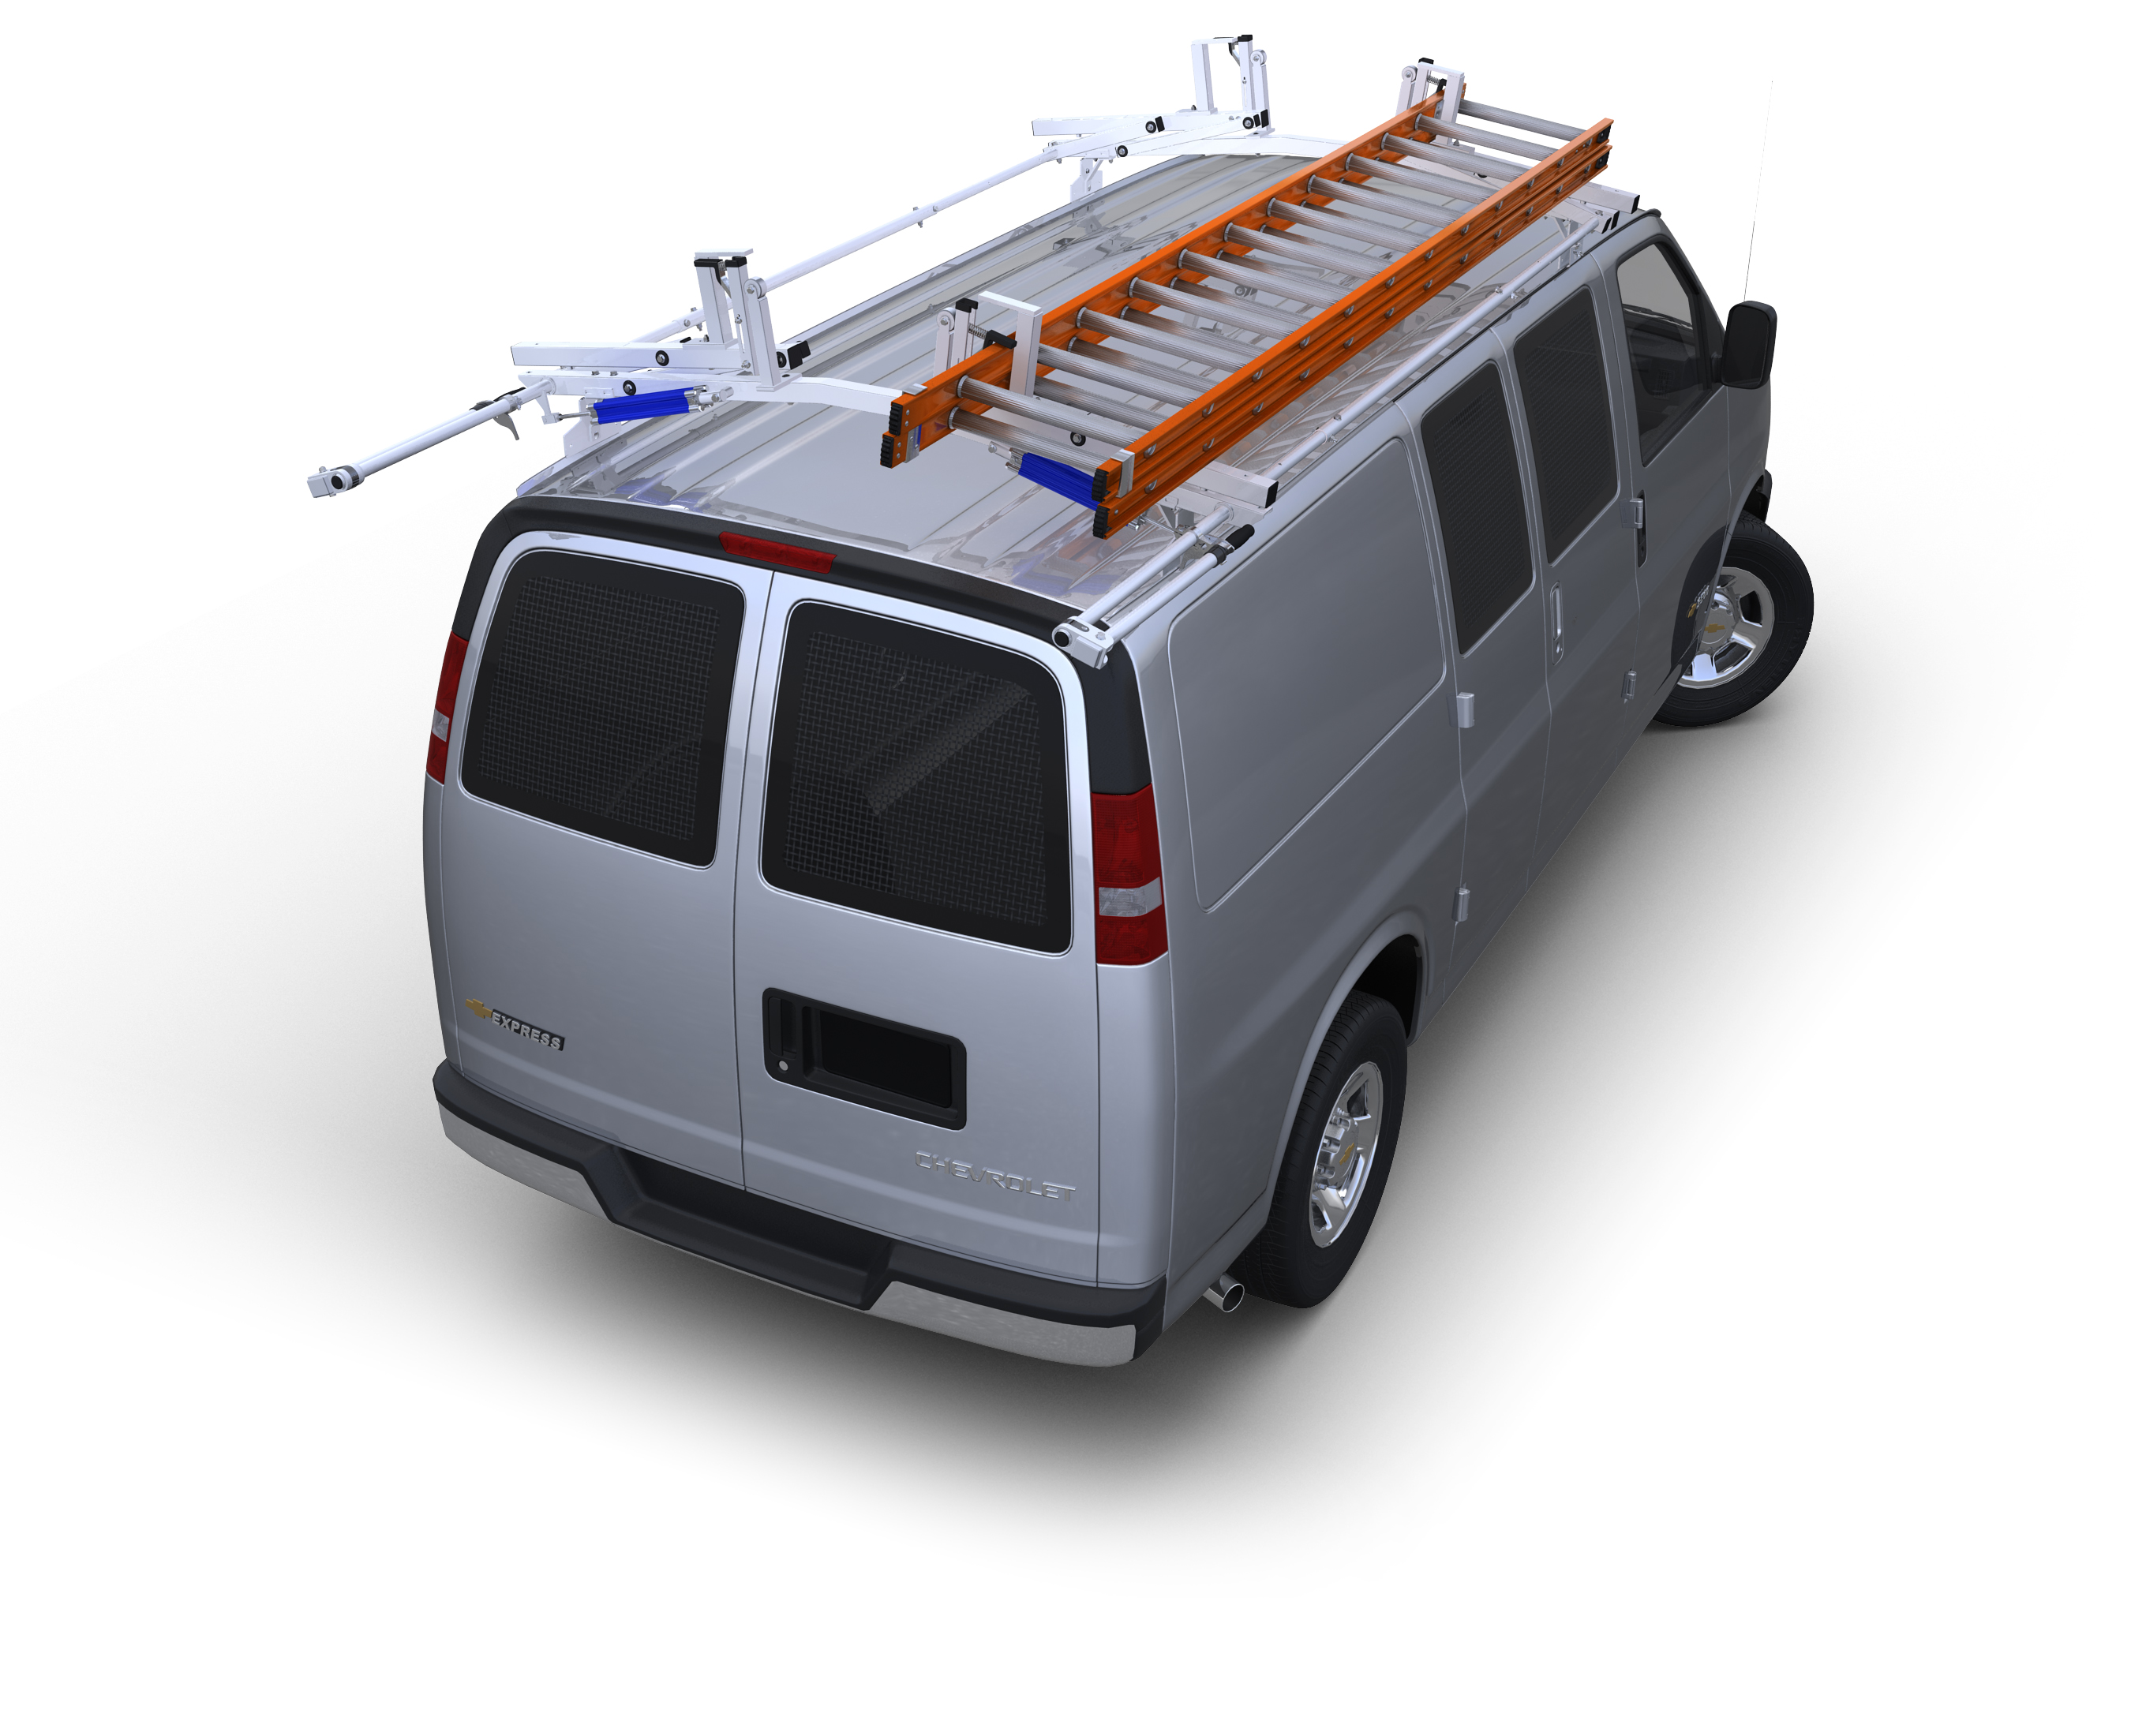 Topper Hot Dip Galvanized 14' Cargo Carrier Rack